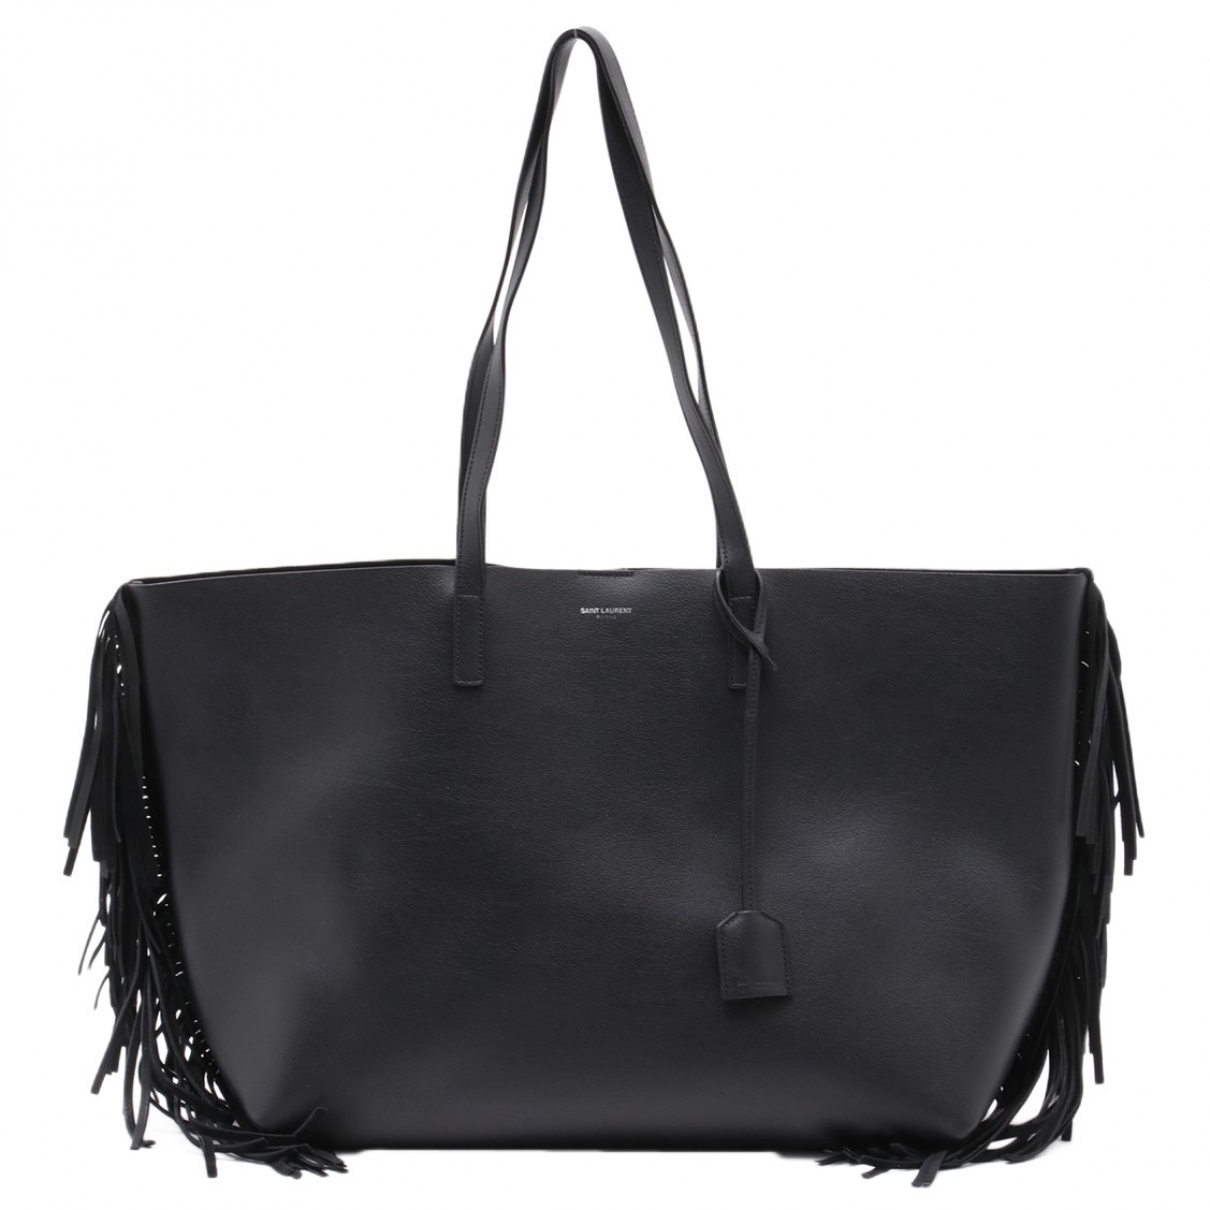 Saint Laurent Shopping Black Leather handbag for Women \N